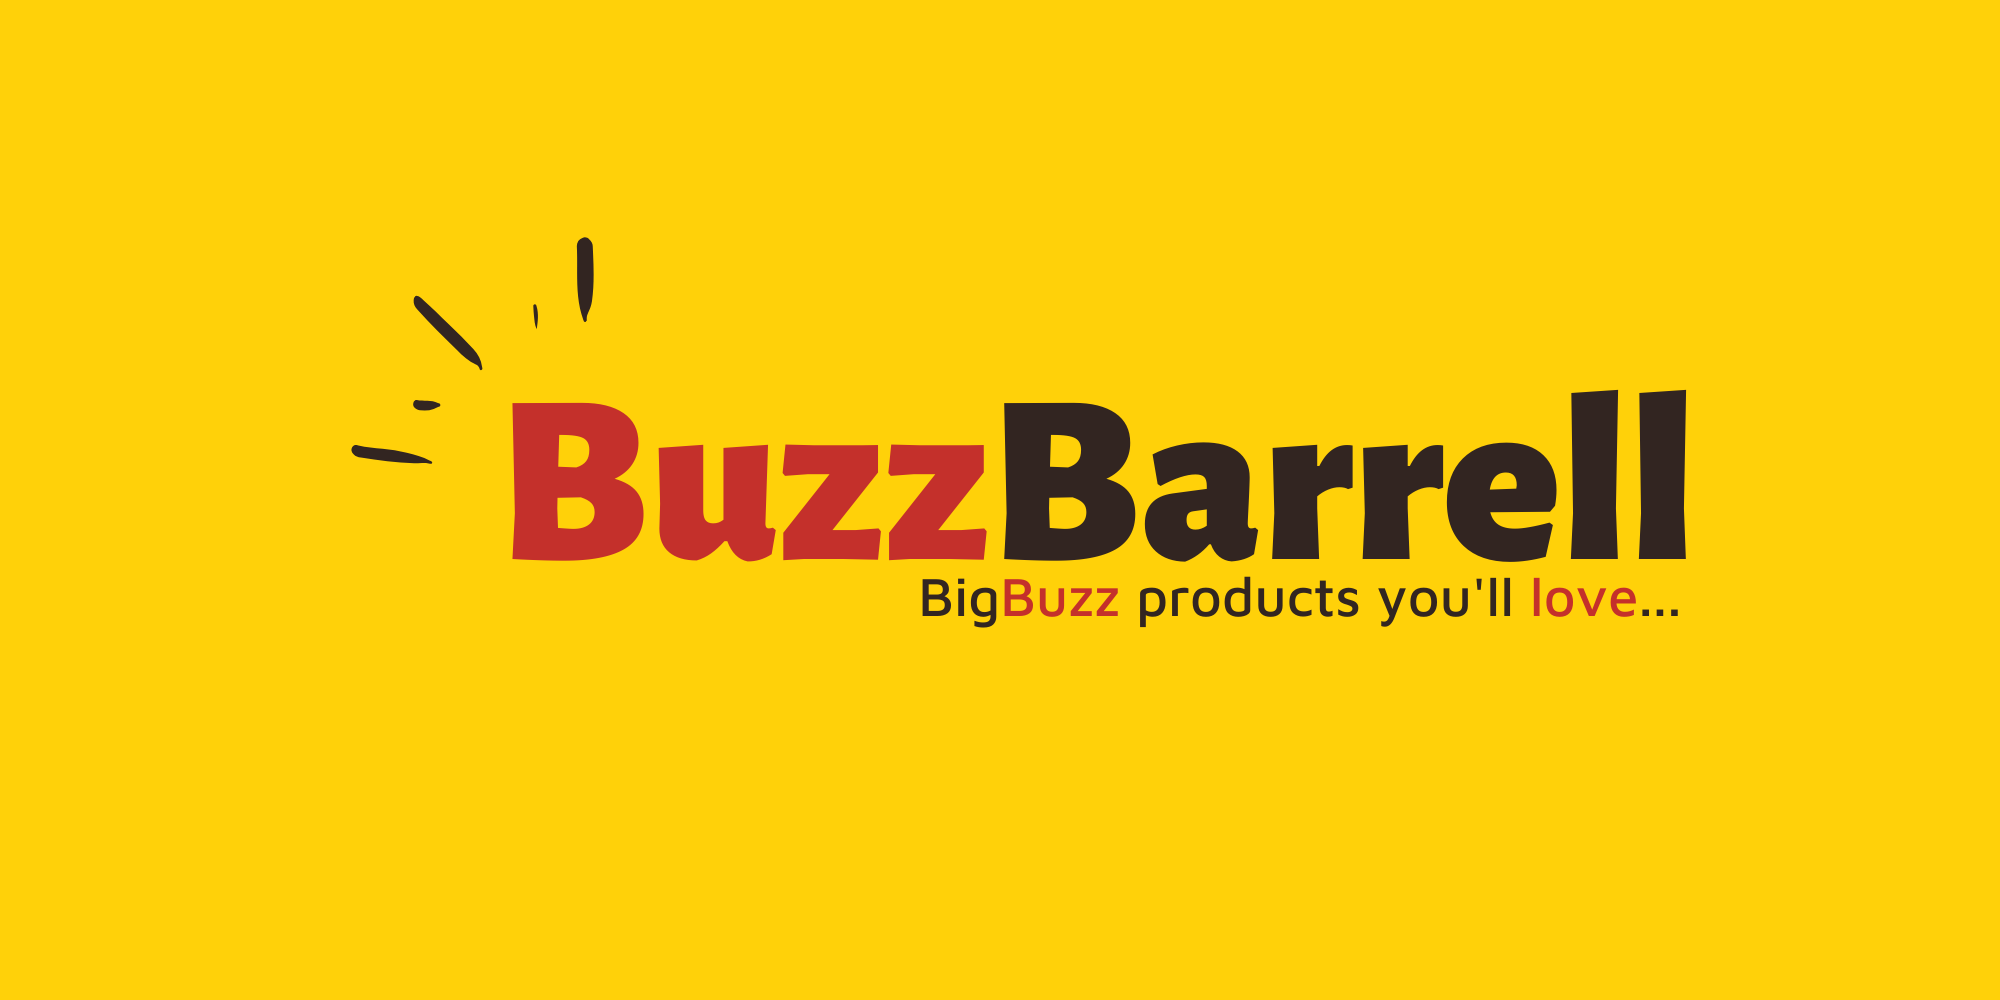 BuzzBarrell - best online shopping experience with BigBuzz products you will love